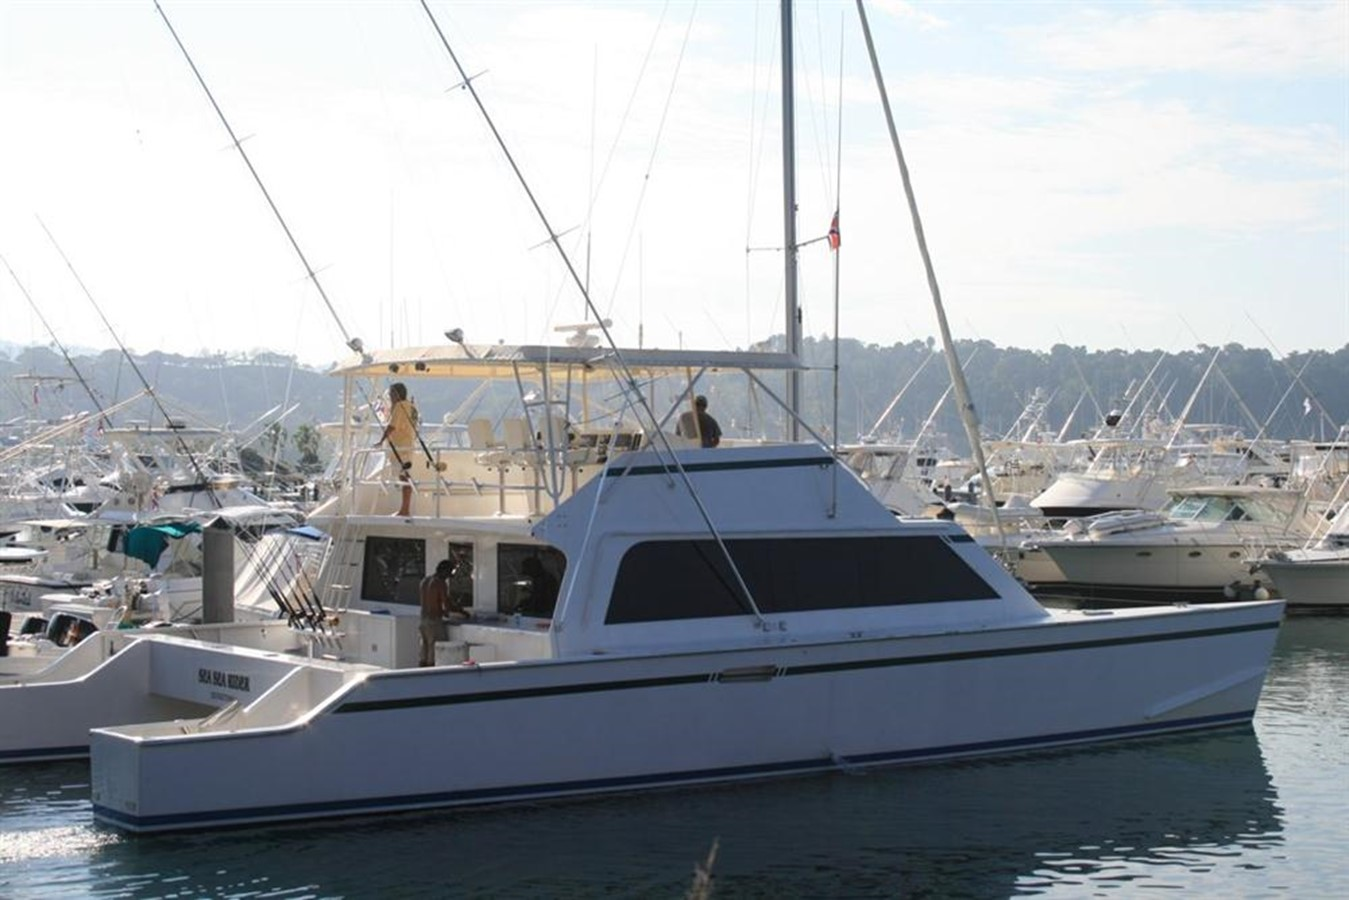 1998 CUSTOM Mick Jarrod PowerCat Sportfisher/Dive Boat Catamaran 156643